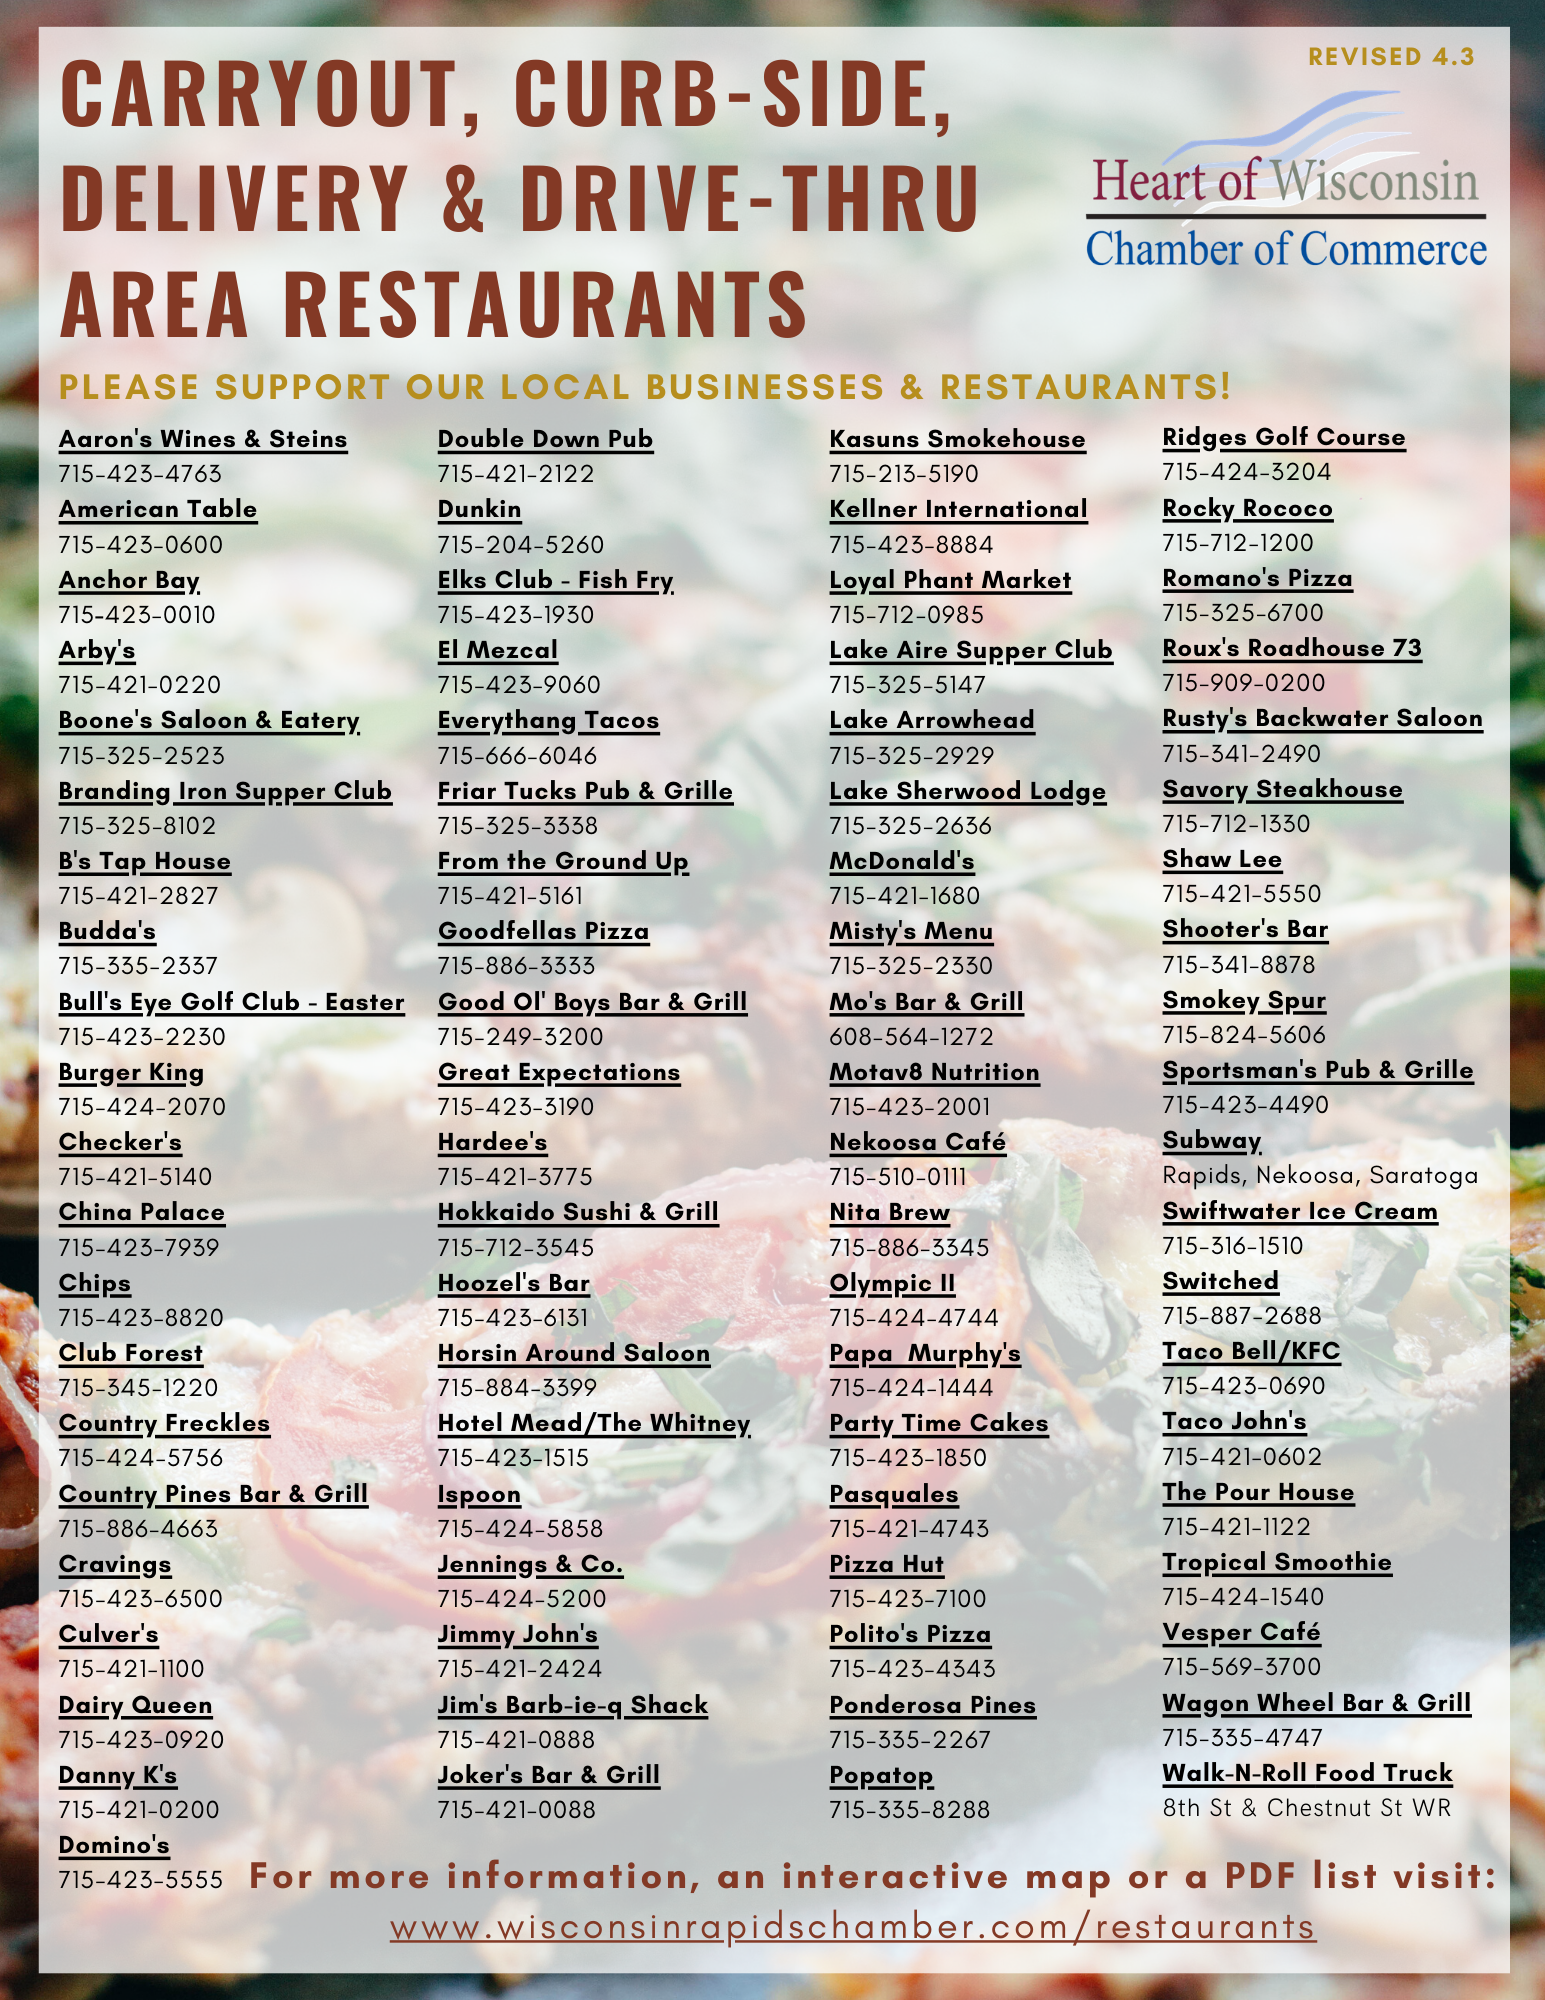 Carryout, Curb-side, Delivery & Drive-Thru Area Restaurants